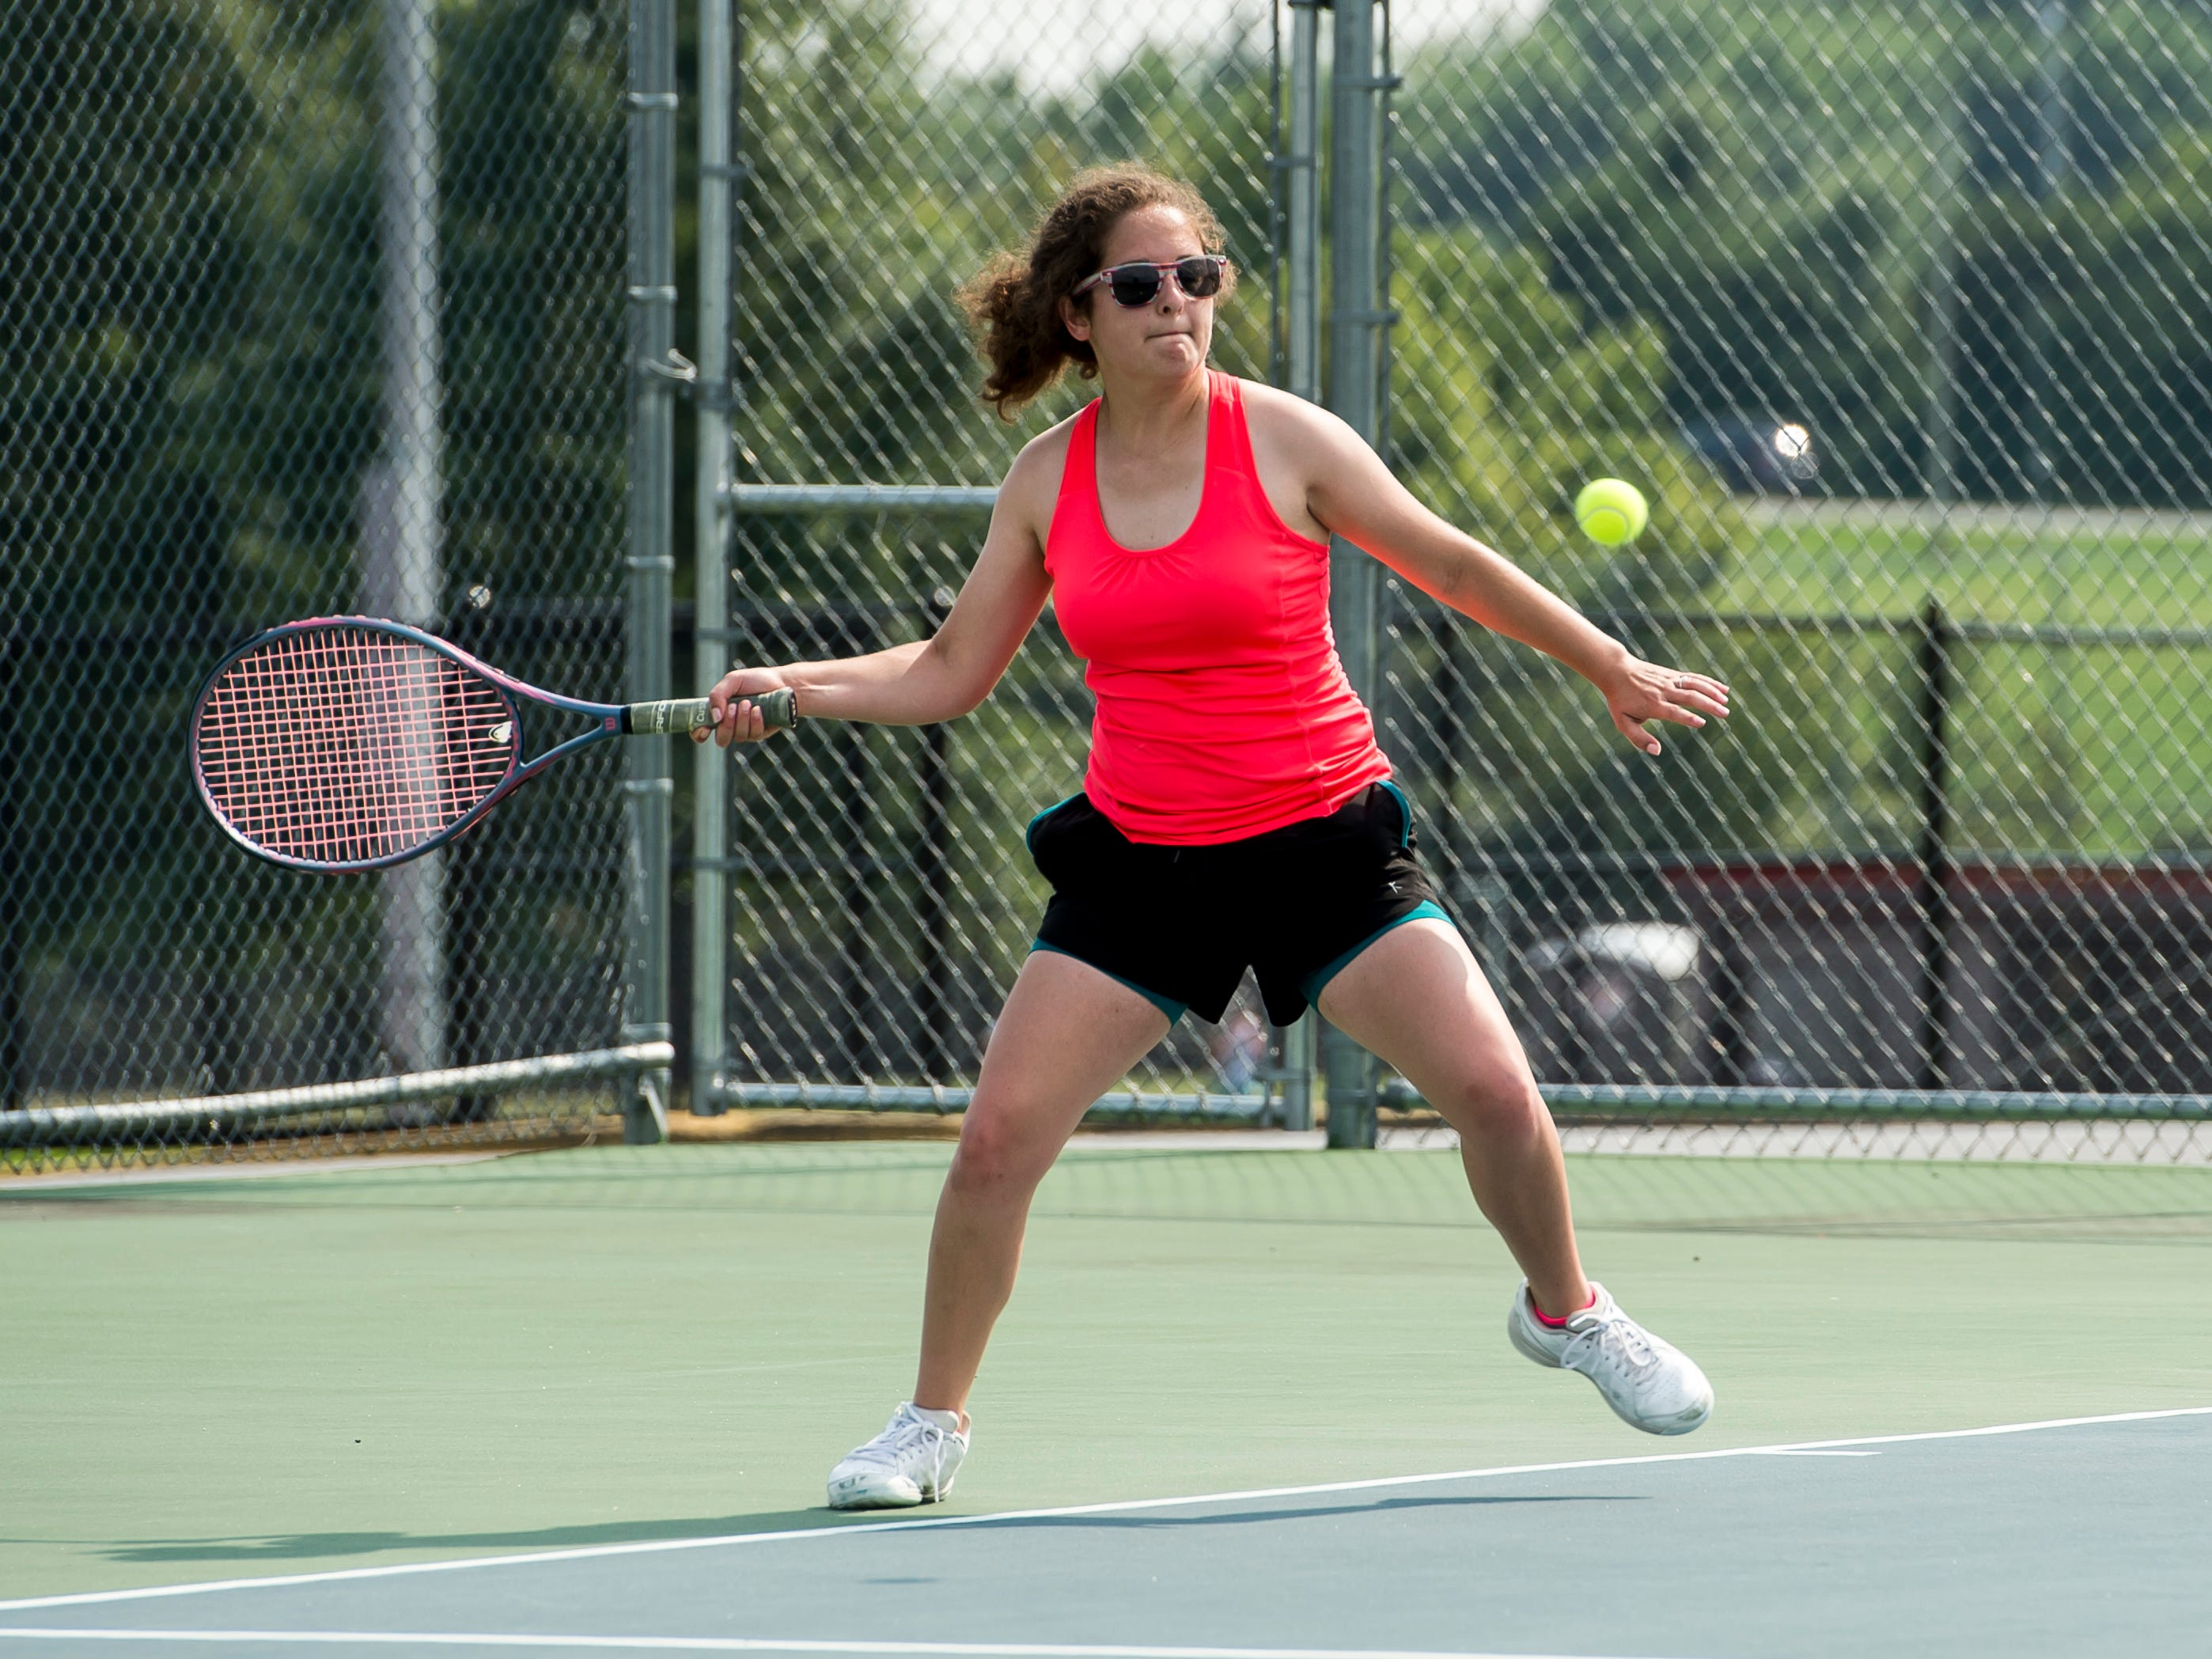 Bermudian Springs' Becky Shank prepares to hit the ball to her partner during practice on Thursday, August 16, 2018.